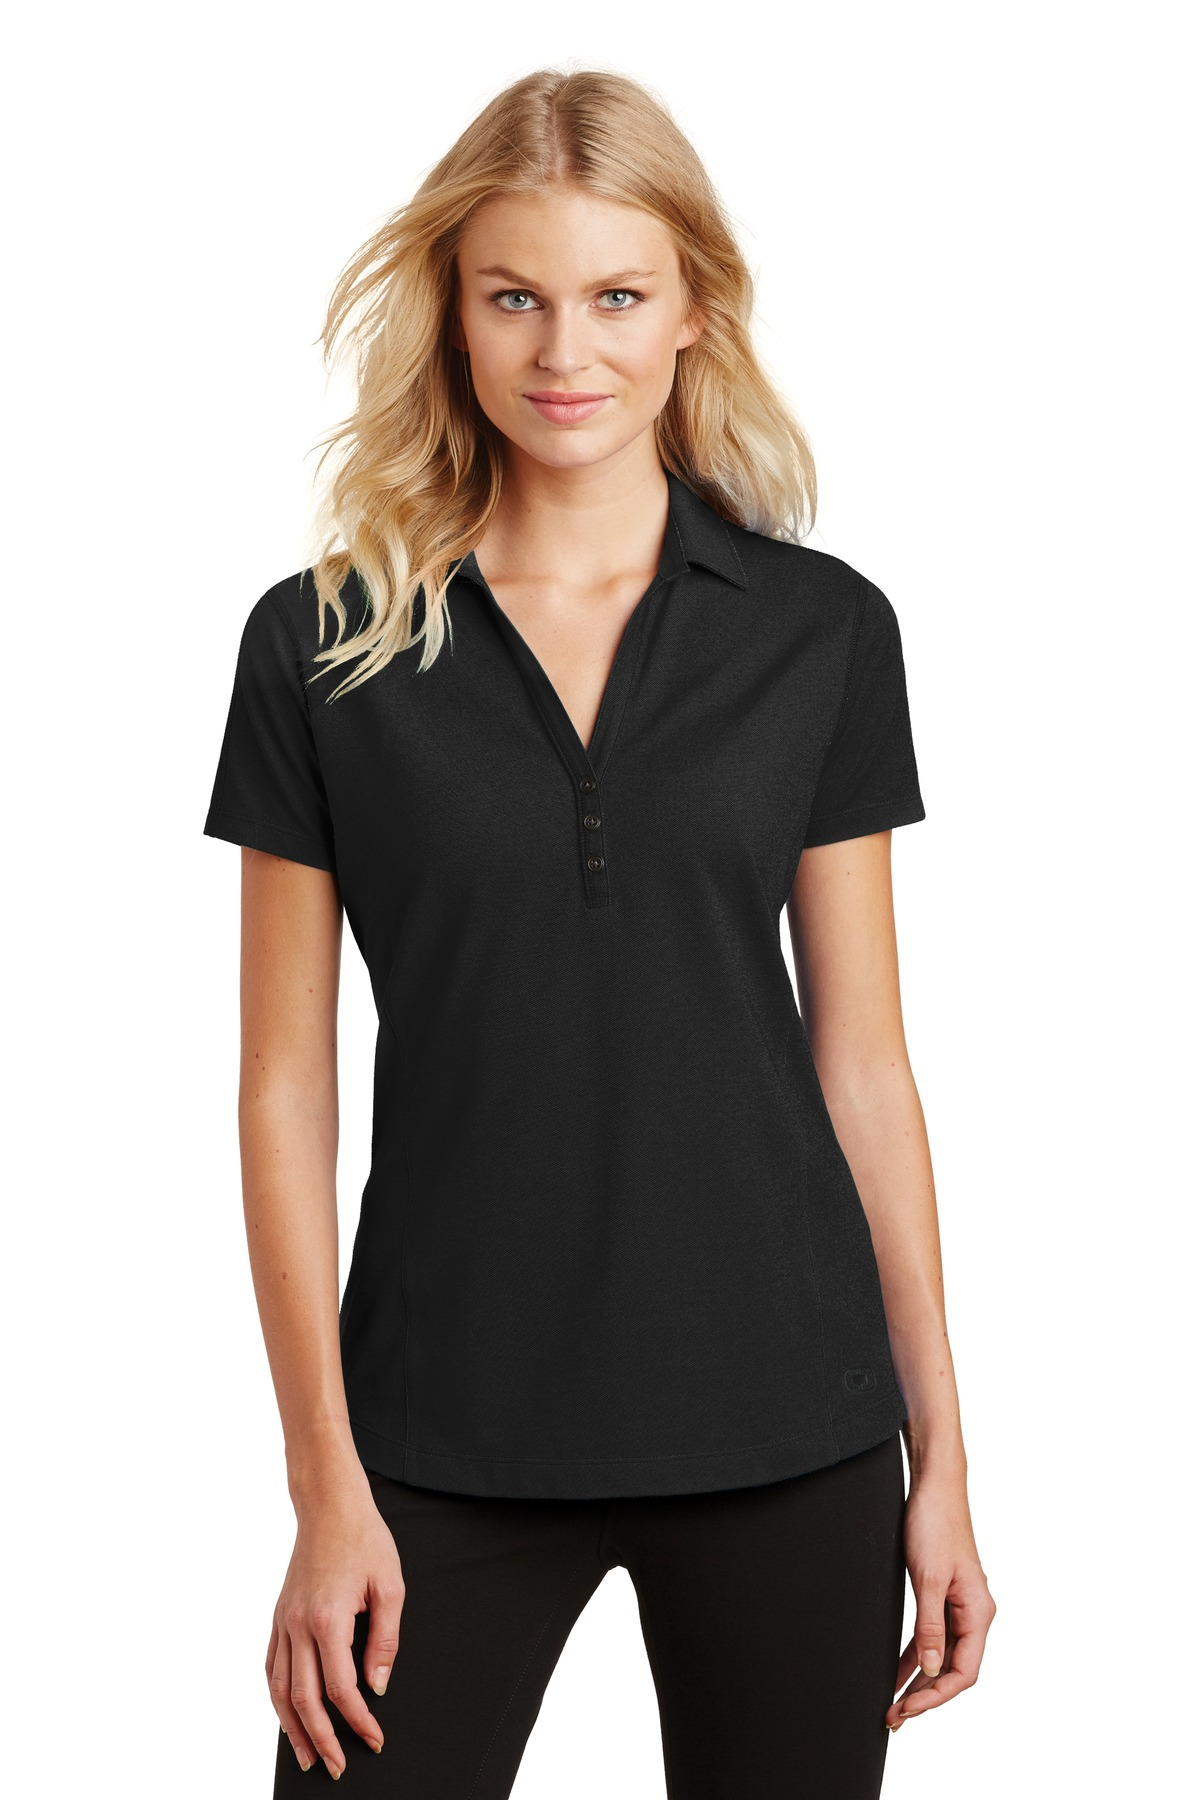 OGIO ®  Ladies Onyx Polo. LOG126 - Blacktop